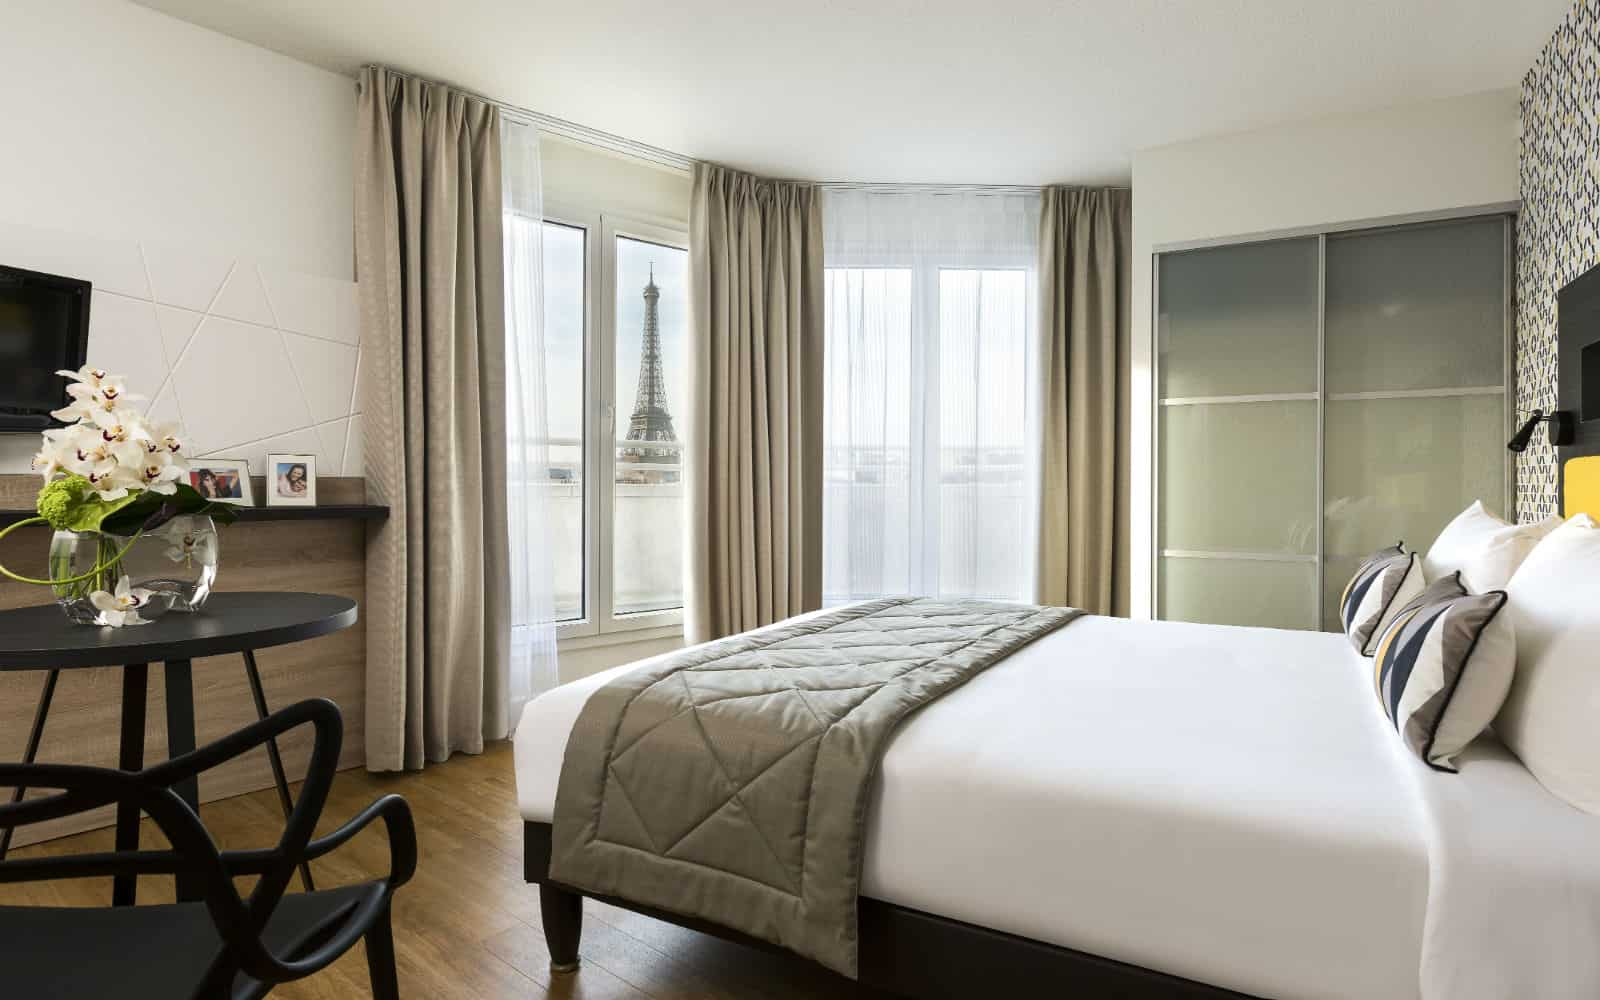 Citadines Tour Eiffel Paris is one of the best hotels with a view of the Eiffel Tower